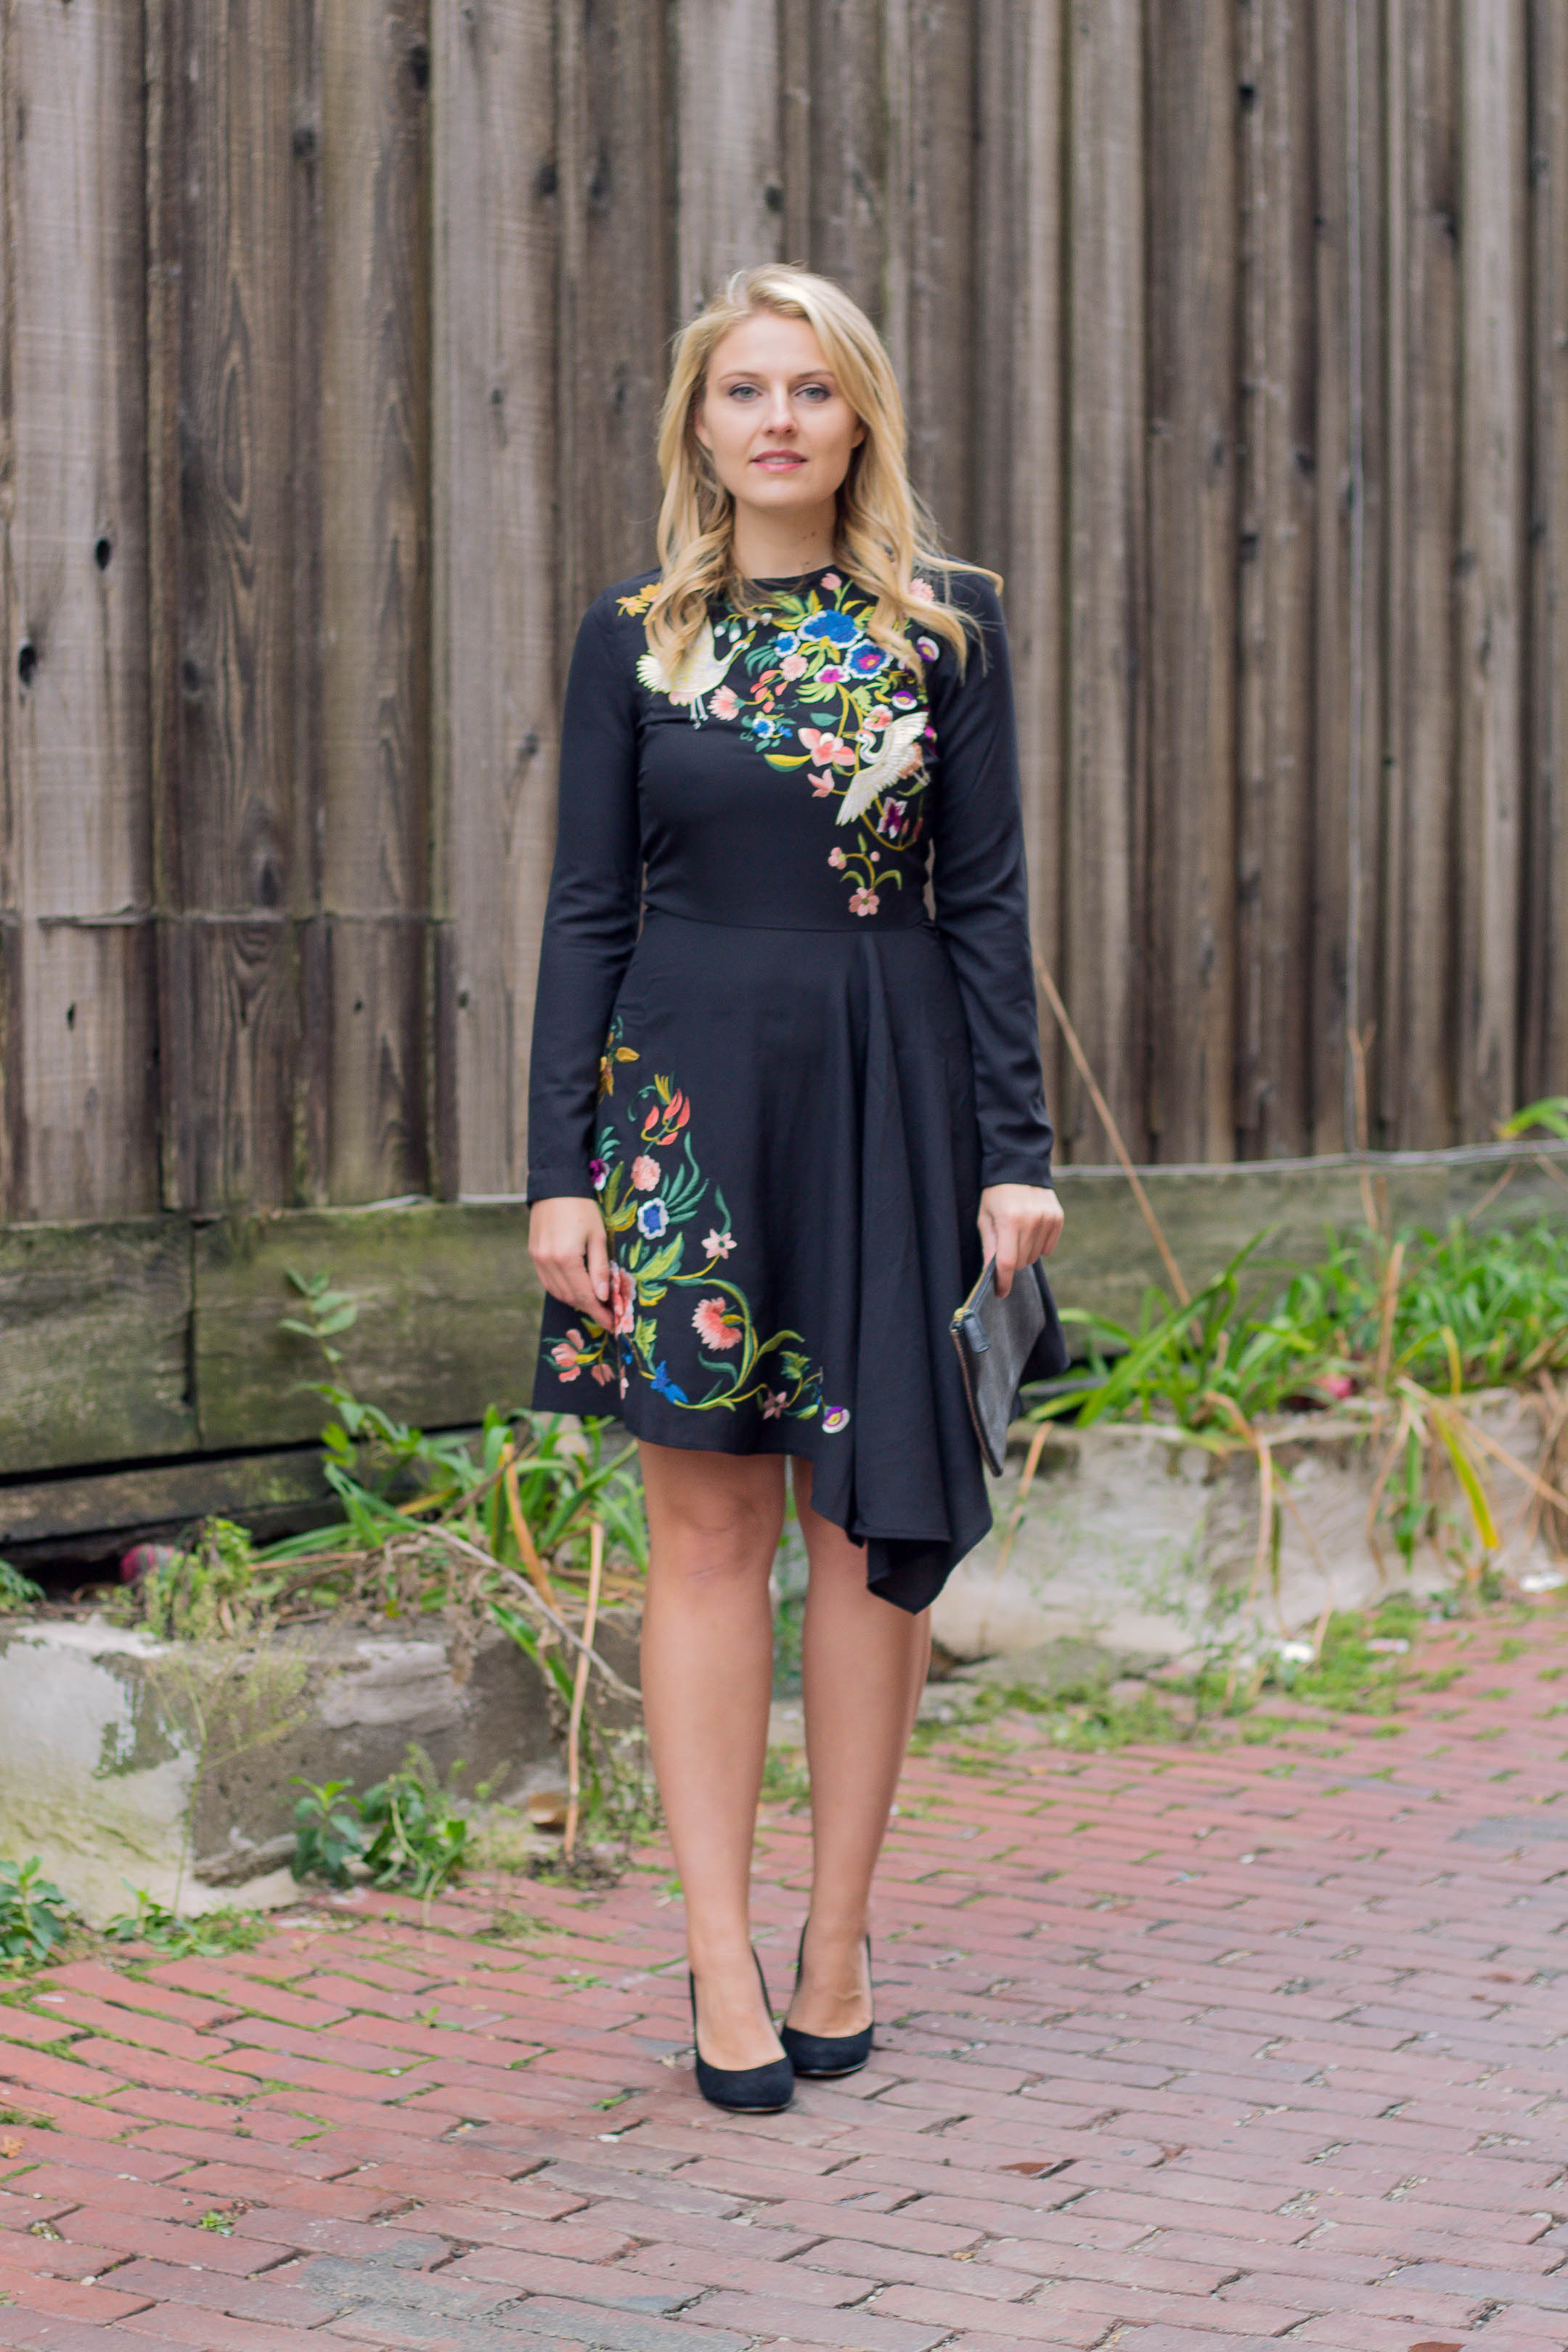 ASOS Embroidery Black Dress for the workplace